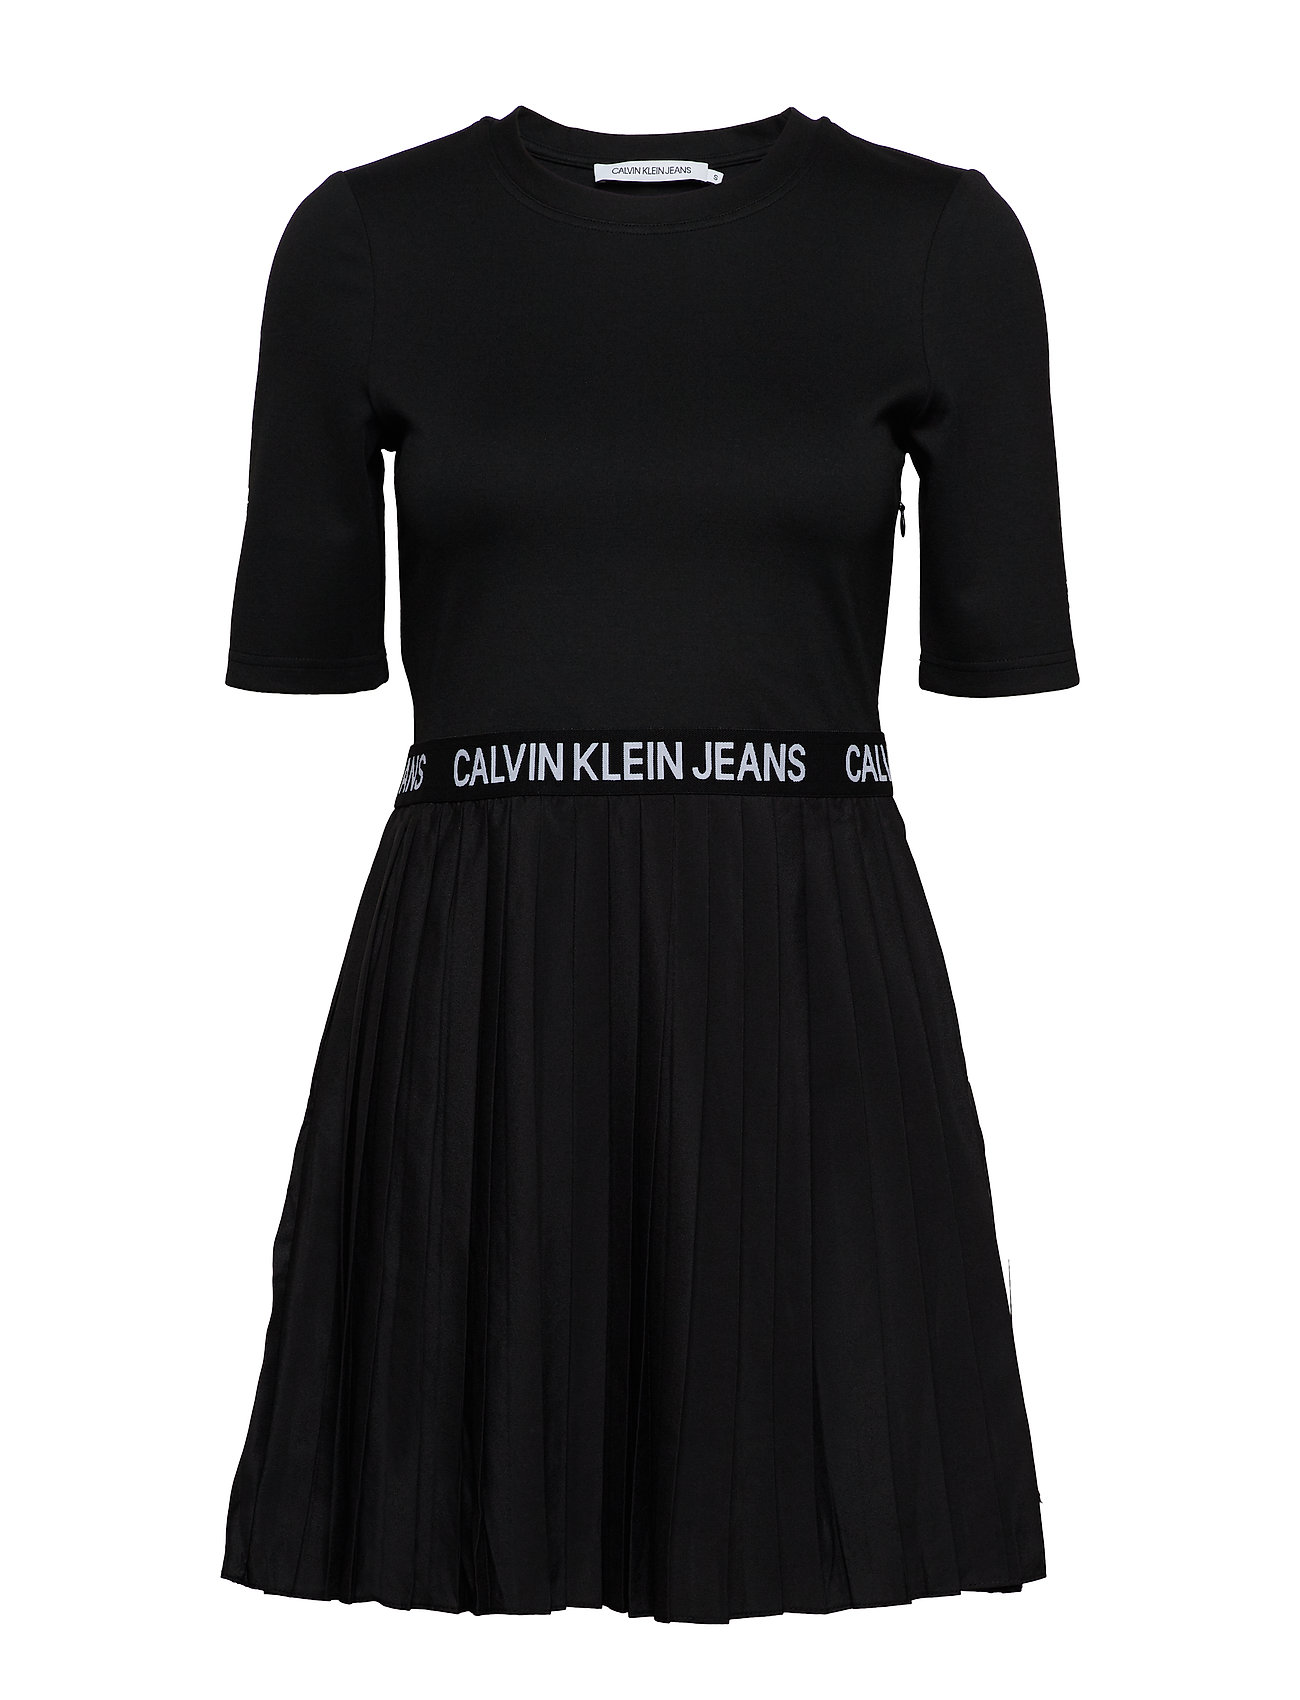 Calvin Klein Jeans PLEATED DRESS - CK BLACK